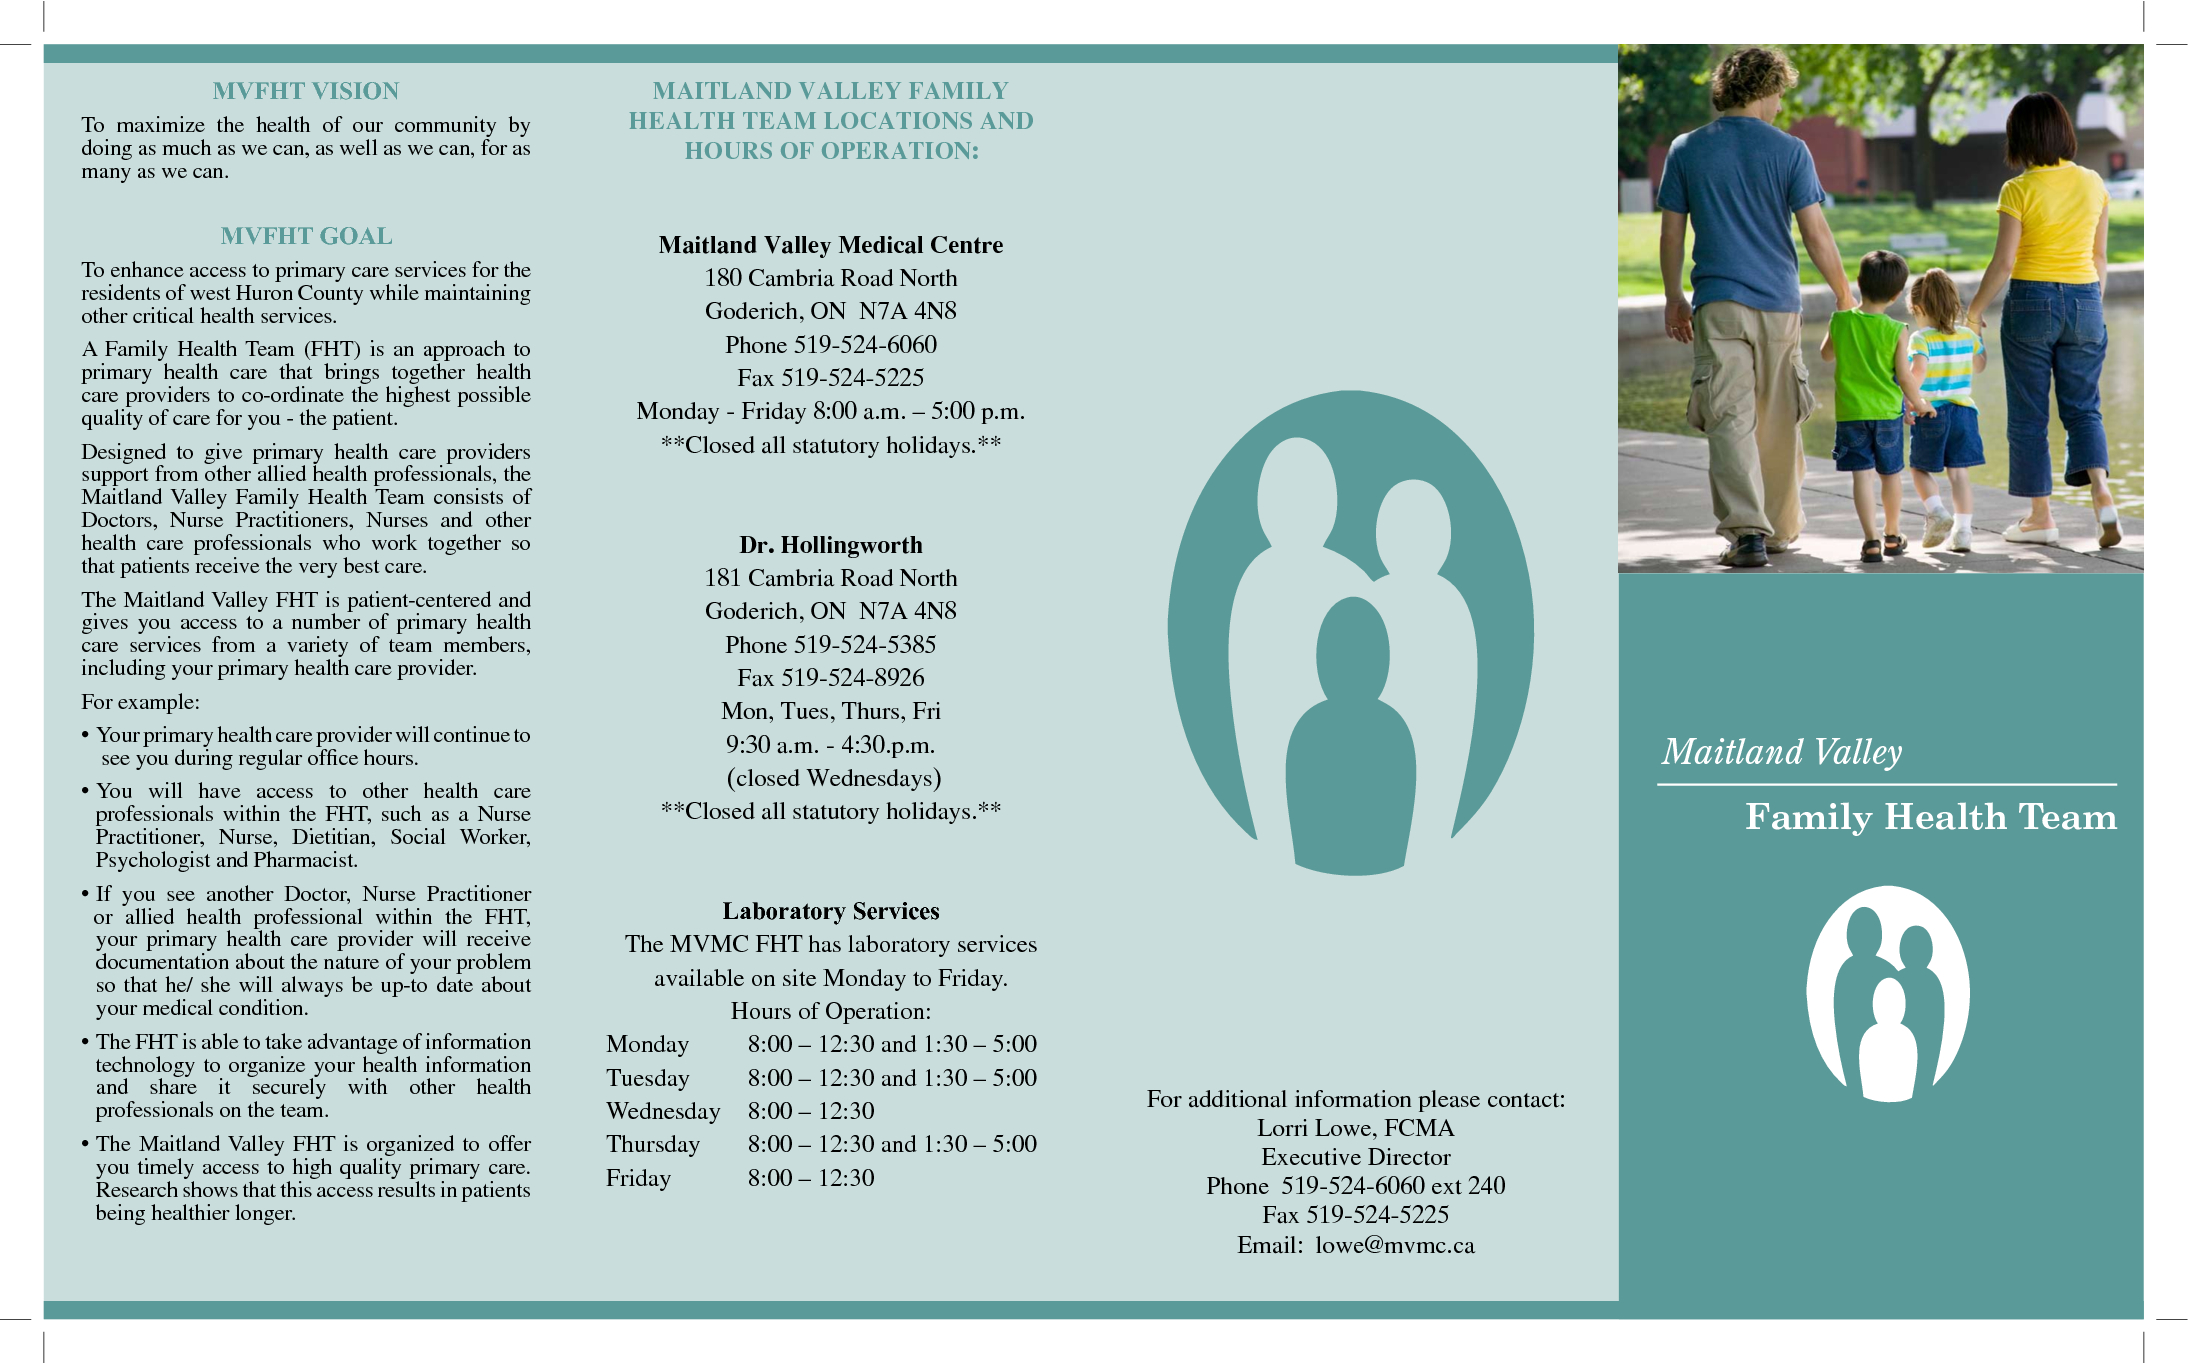 Medical Office Brochure Templates within Medical Office Brochure Templates